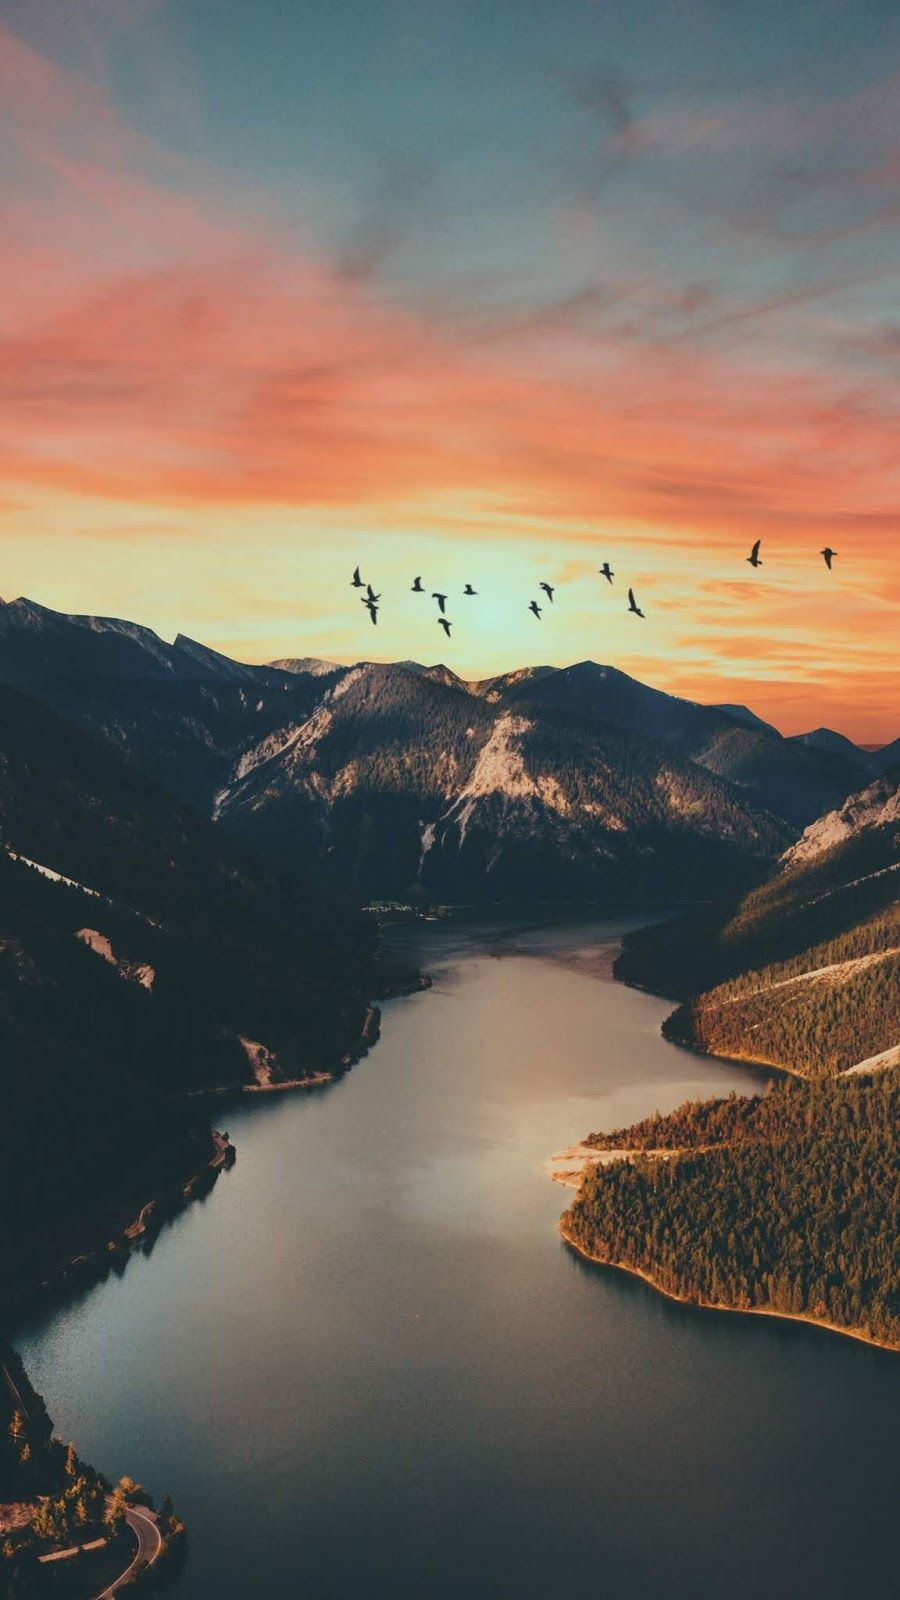 Sunset Mountain Wallpaper Wallpaper Iphone Android Background Followme Best Nature Wallpapers Landscape Wallpaper Nature Backgrounds